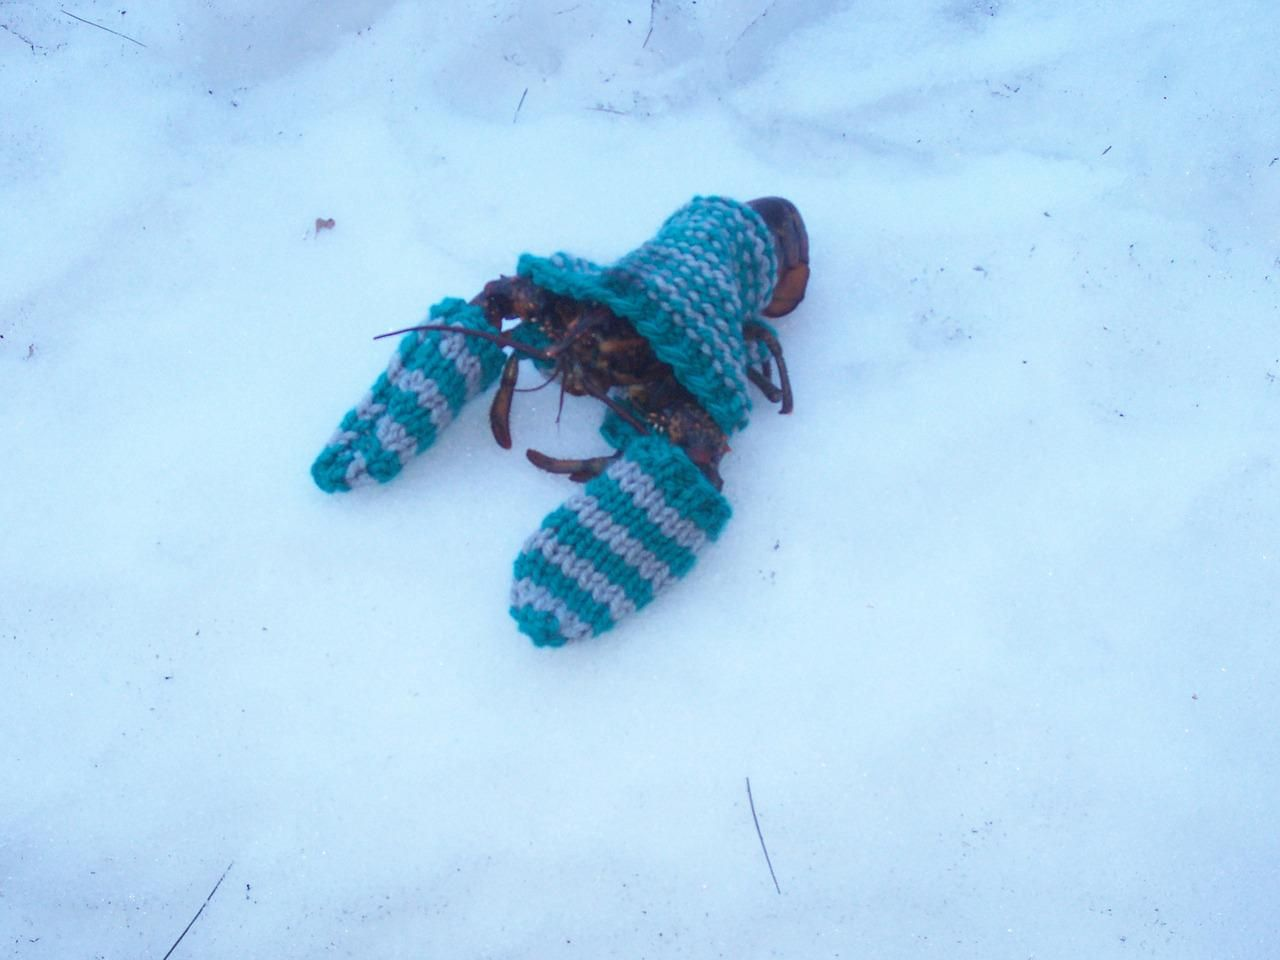 Remember, you need to keep your pets warm, when they go outside.